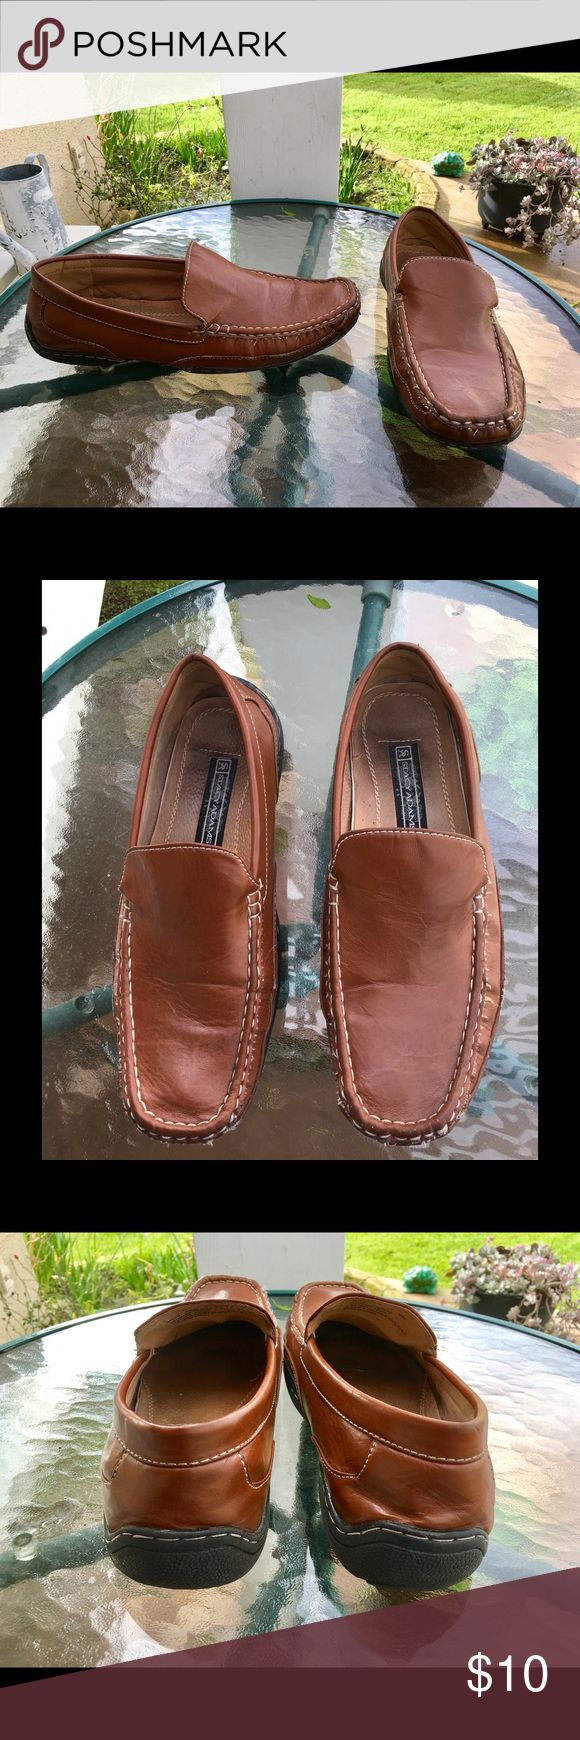 Stacy Adams Driving Loafers Men's size 10 medium. Brown faux leather slip on driving loafers/moccasins. Leather linings. A bit of bottom wear but nice & comfy! Stacy Adams Shoes Loafers & Slip-Ons